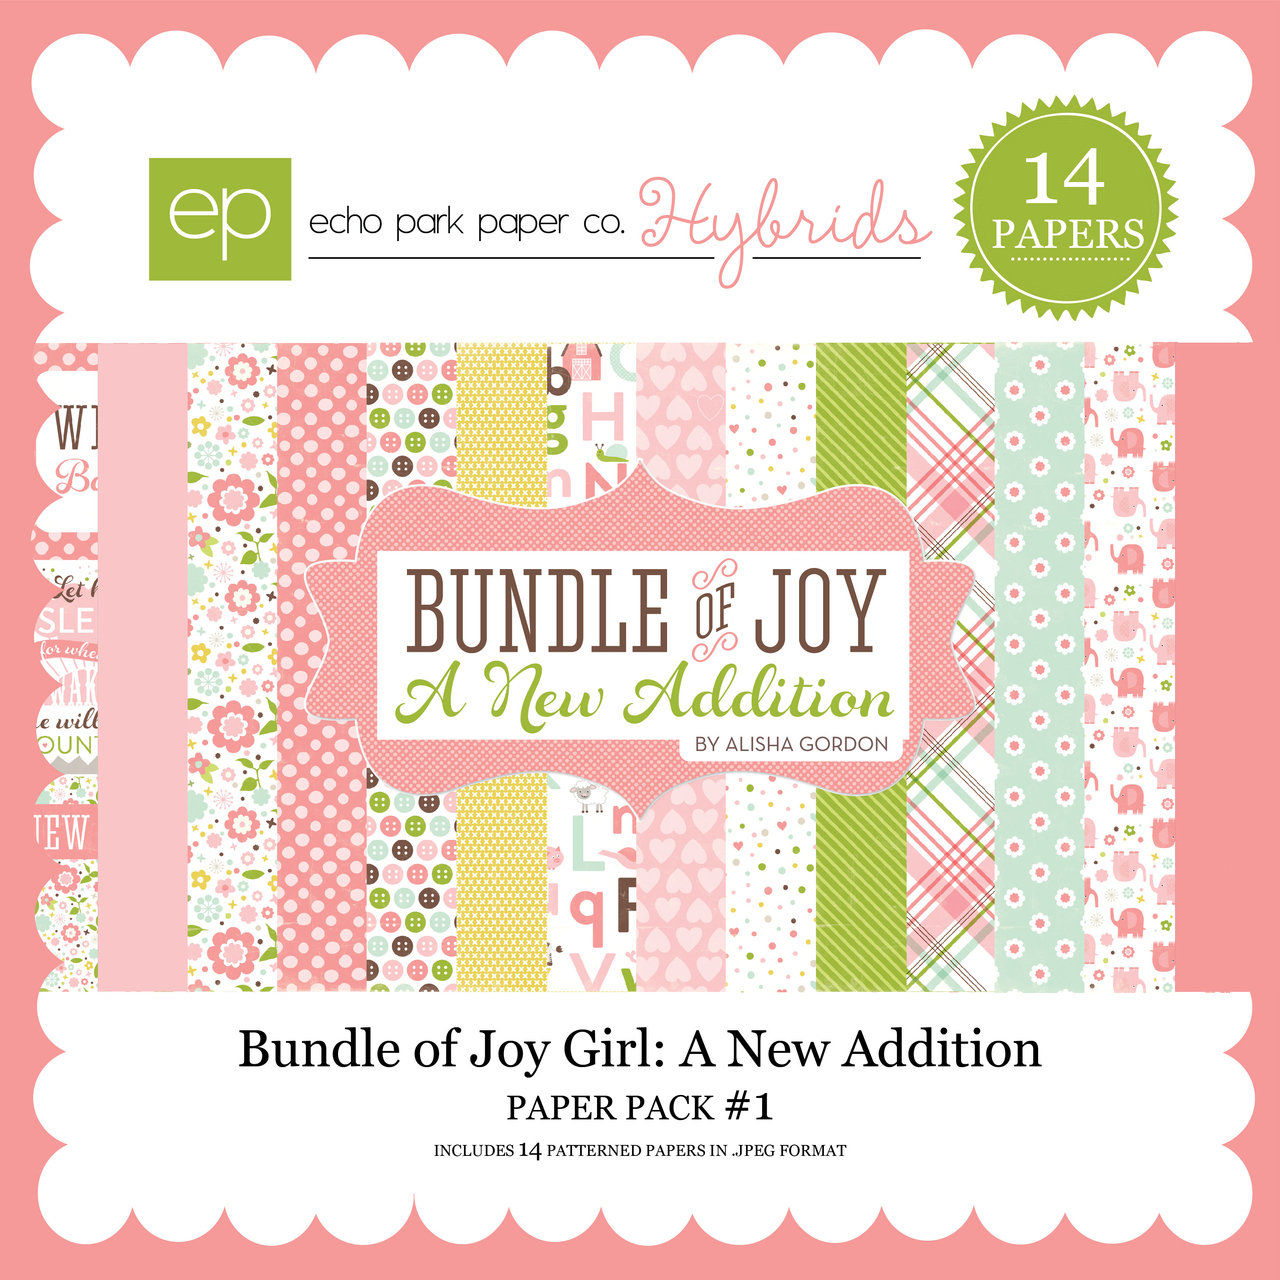 Bundle of Joy Girl: A New Addition Paper Pack